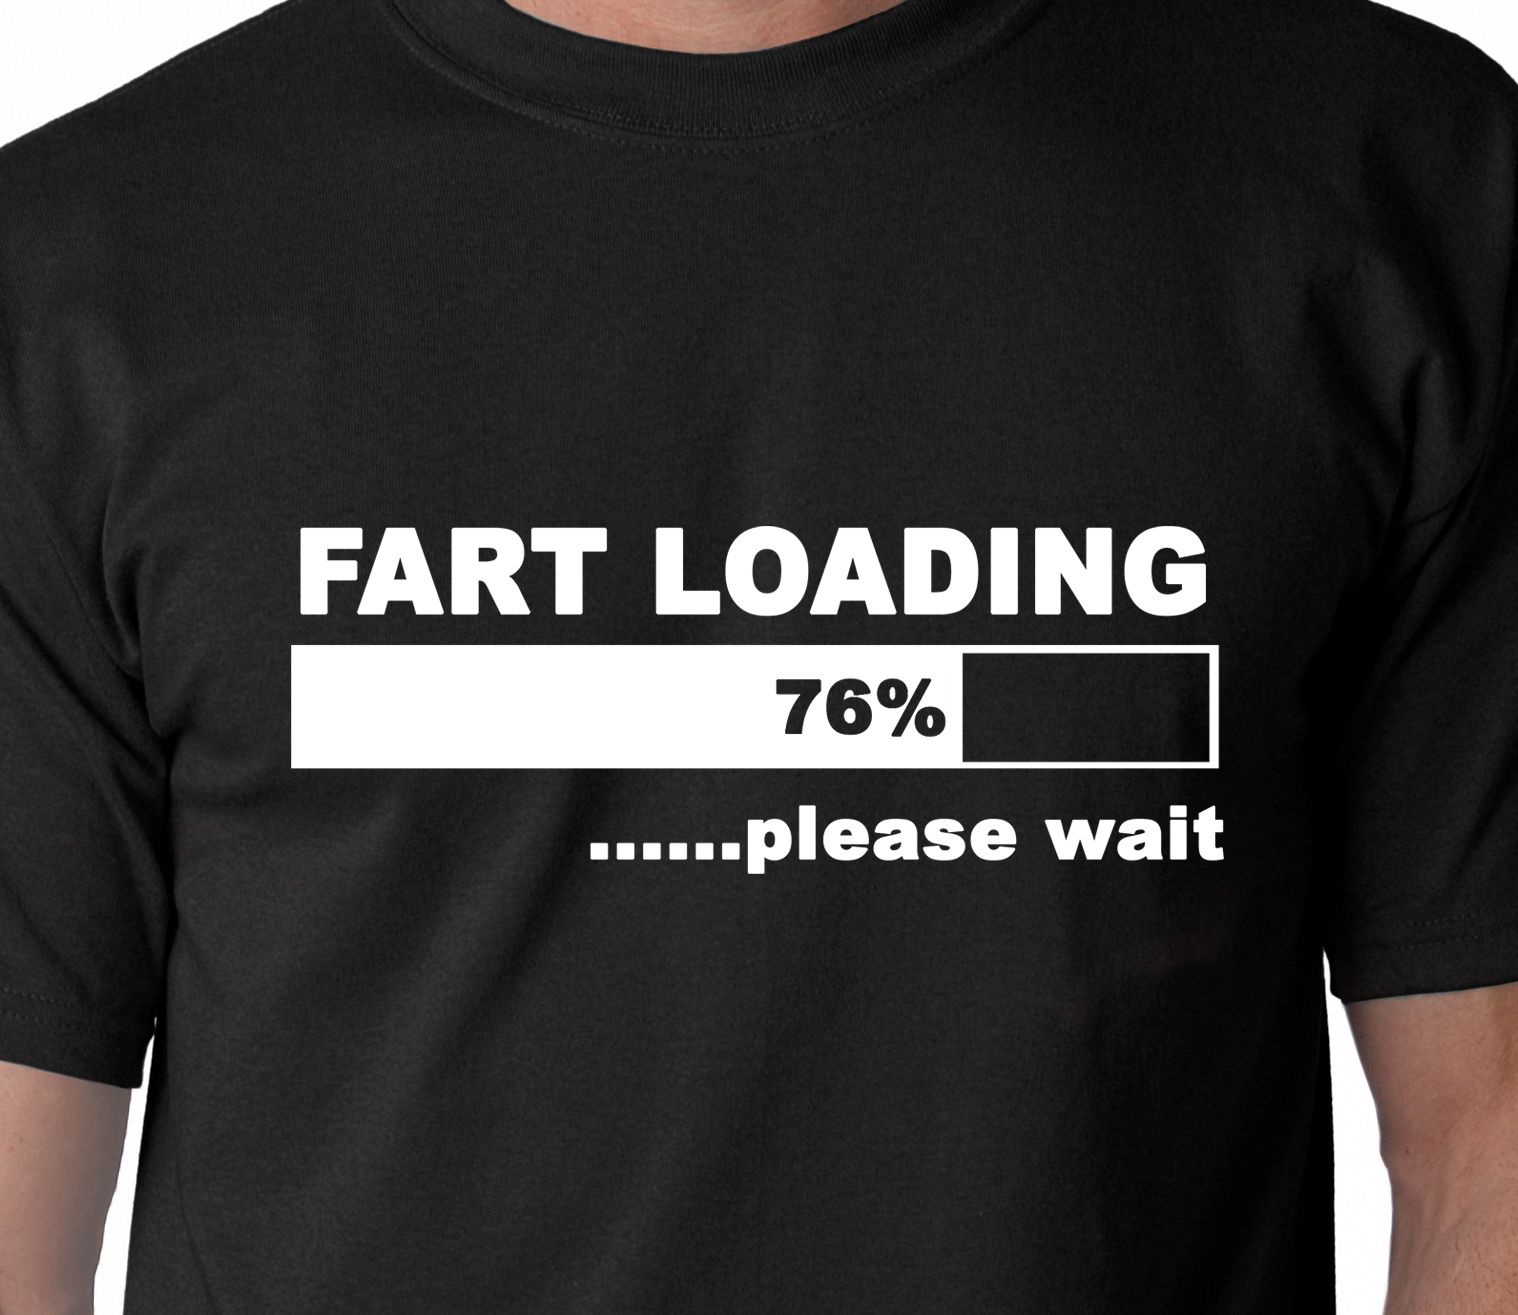 Funny T Shirt Prints | Is Shirt